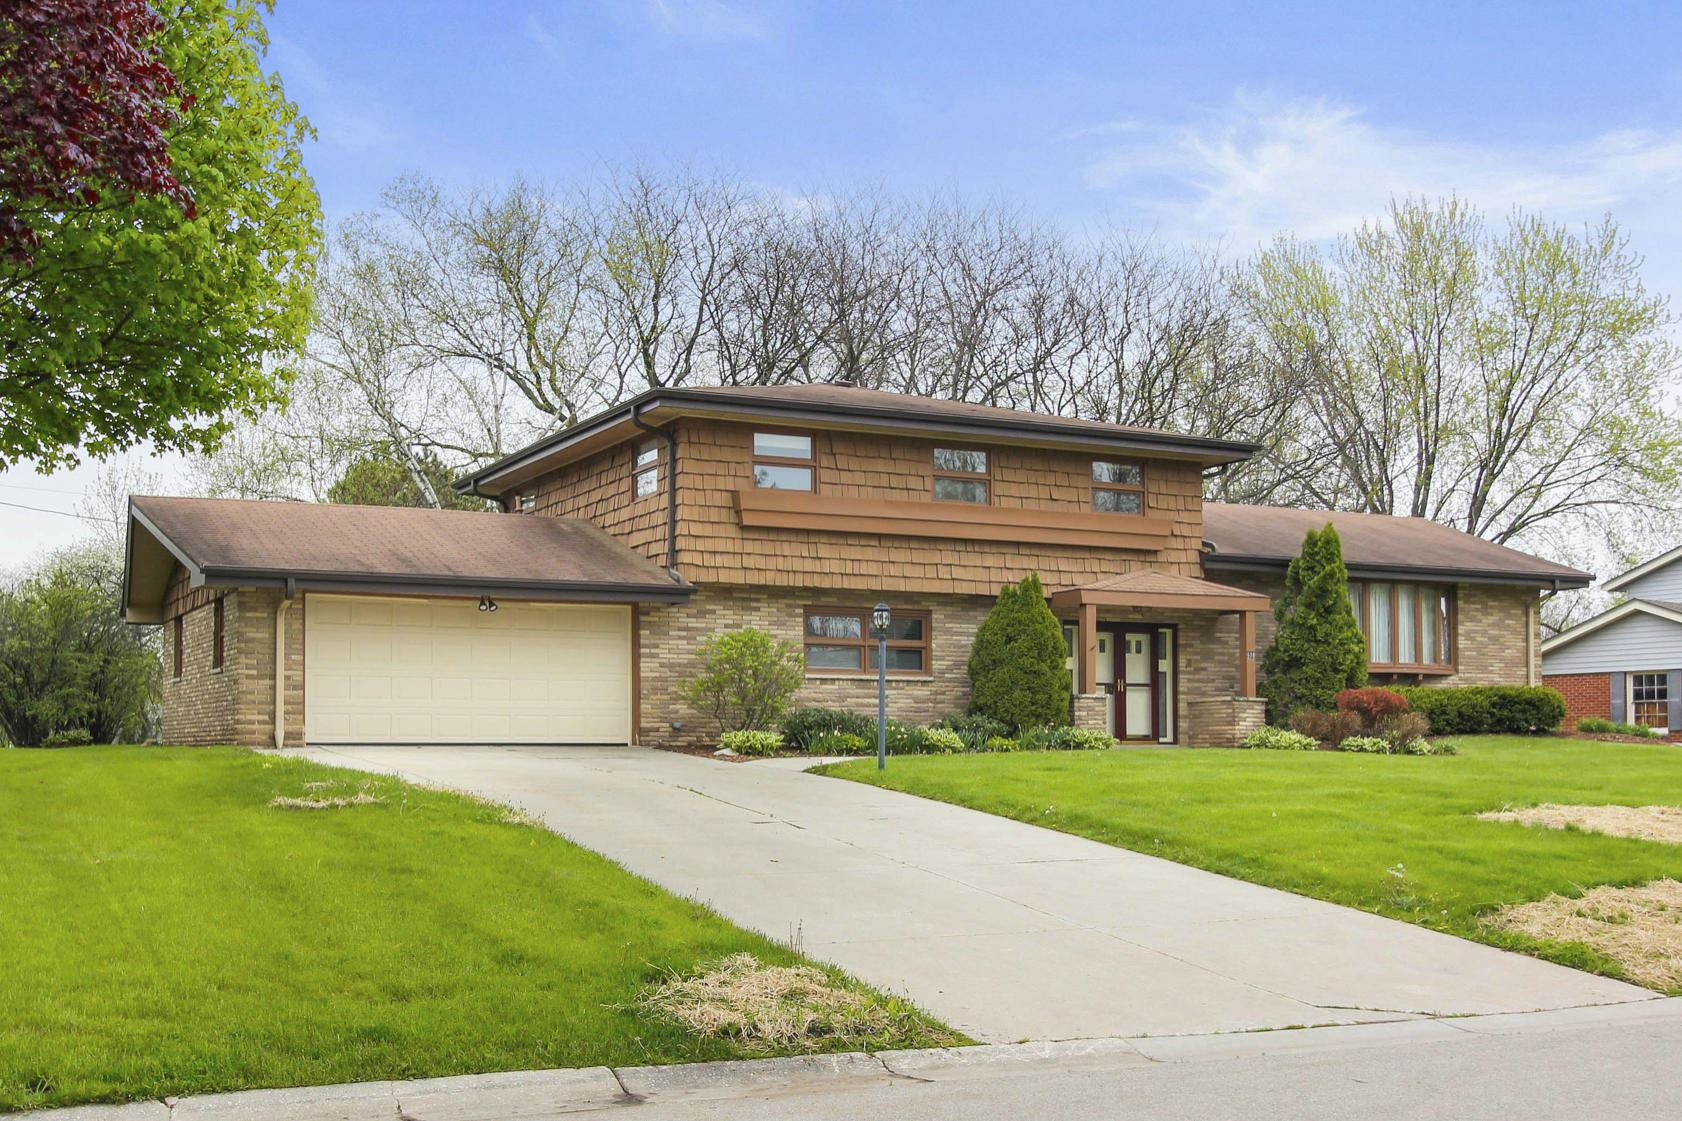 610 Alta Loma Dr, Thiensville, WI 53092 - #: 1690572